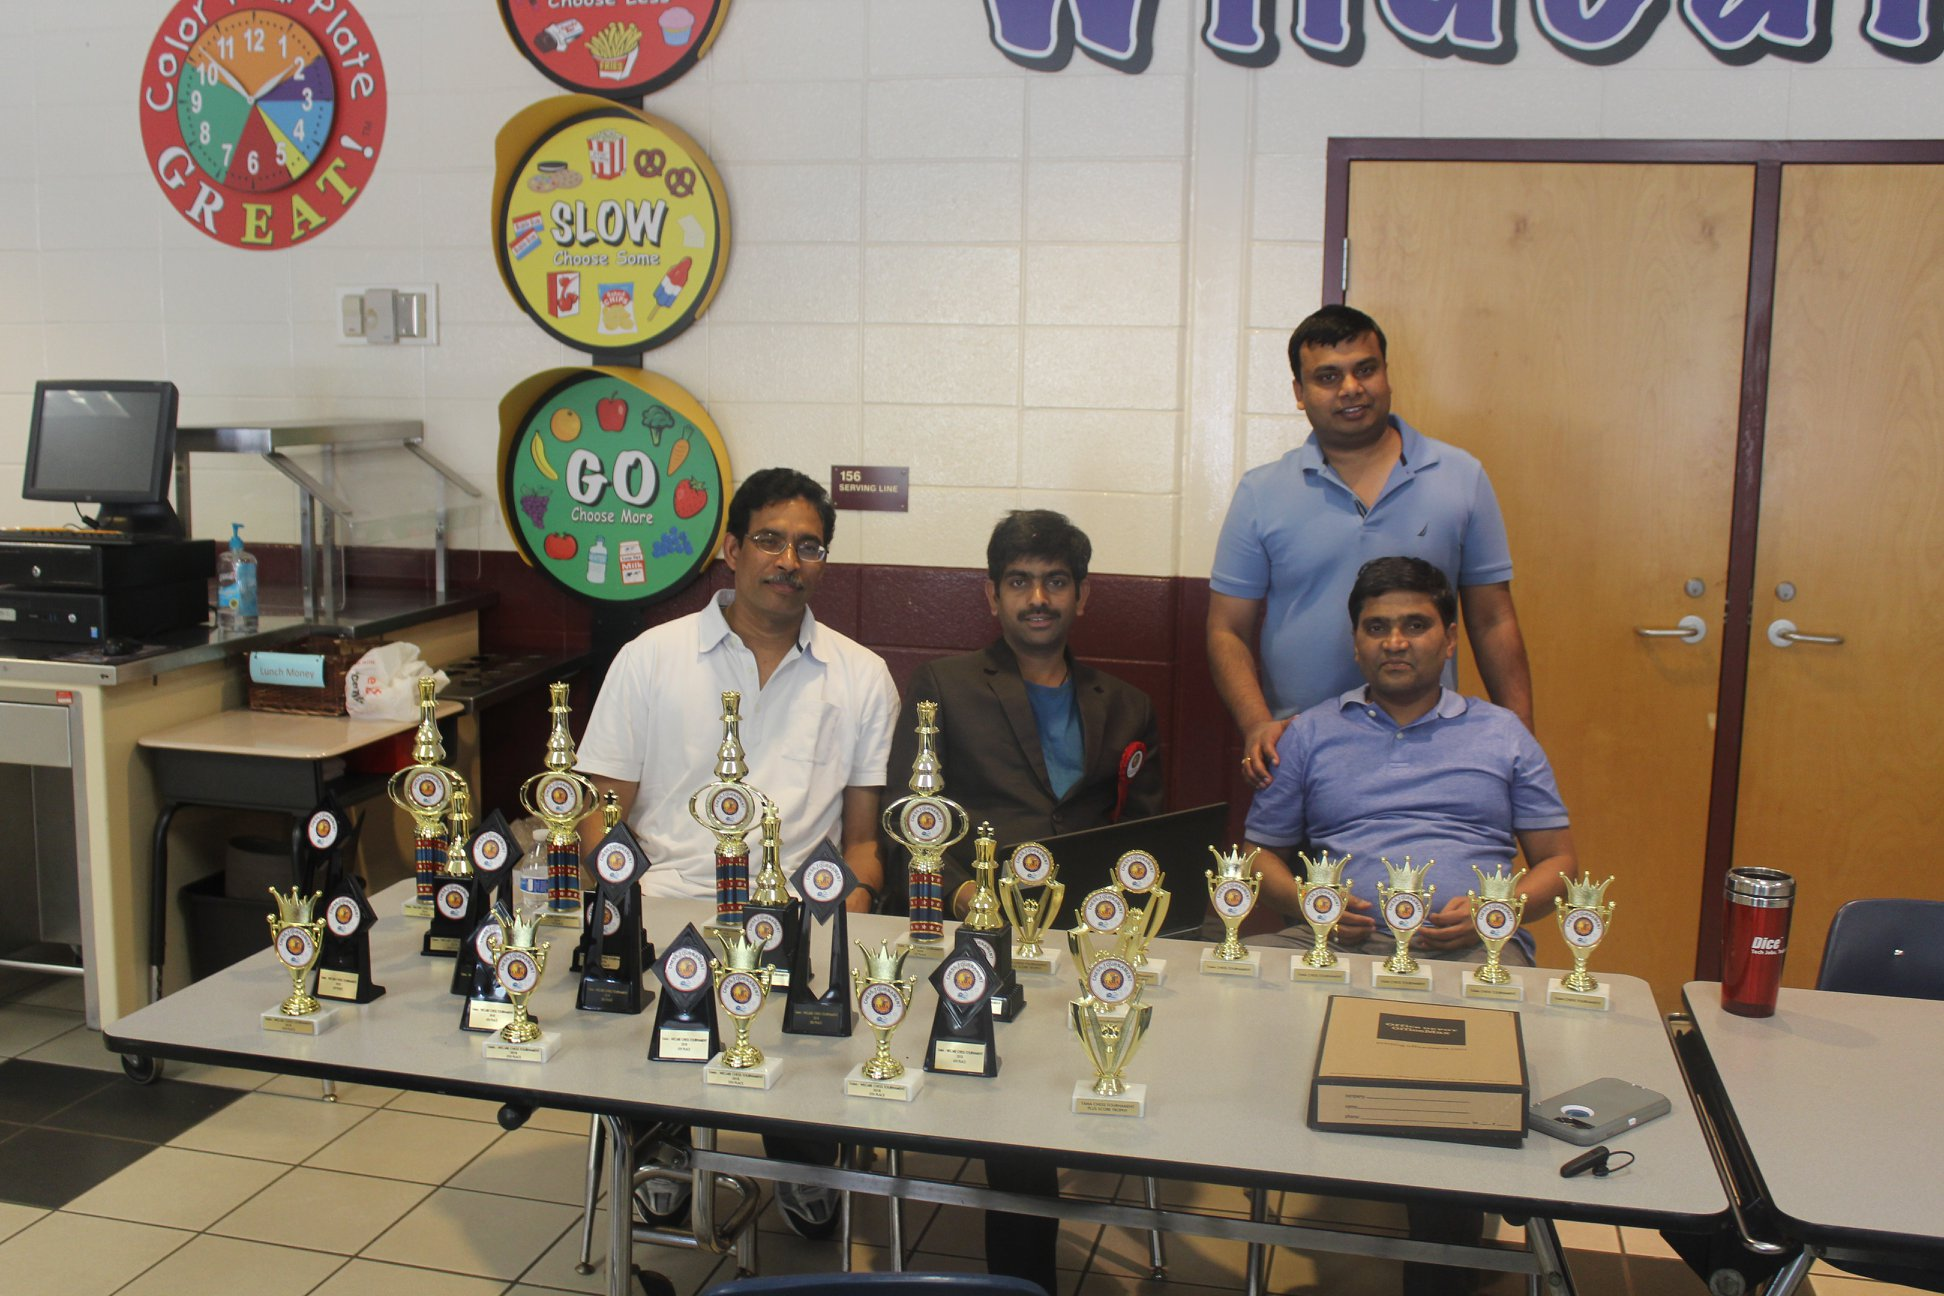 TAMA - WeCare Chess Tournament